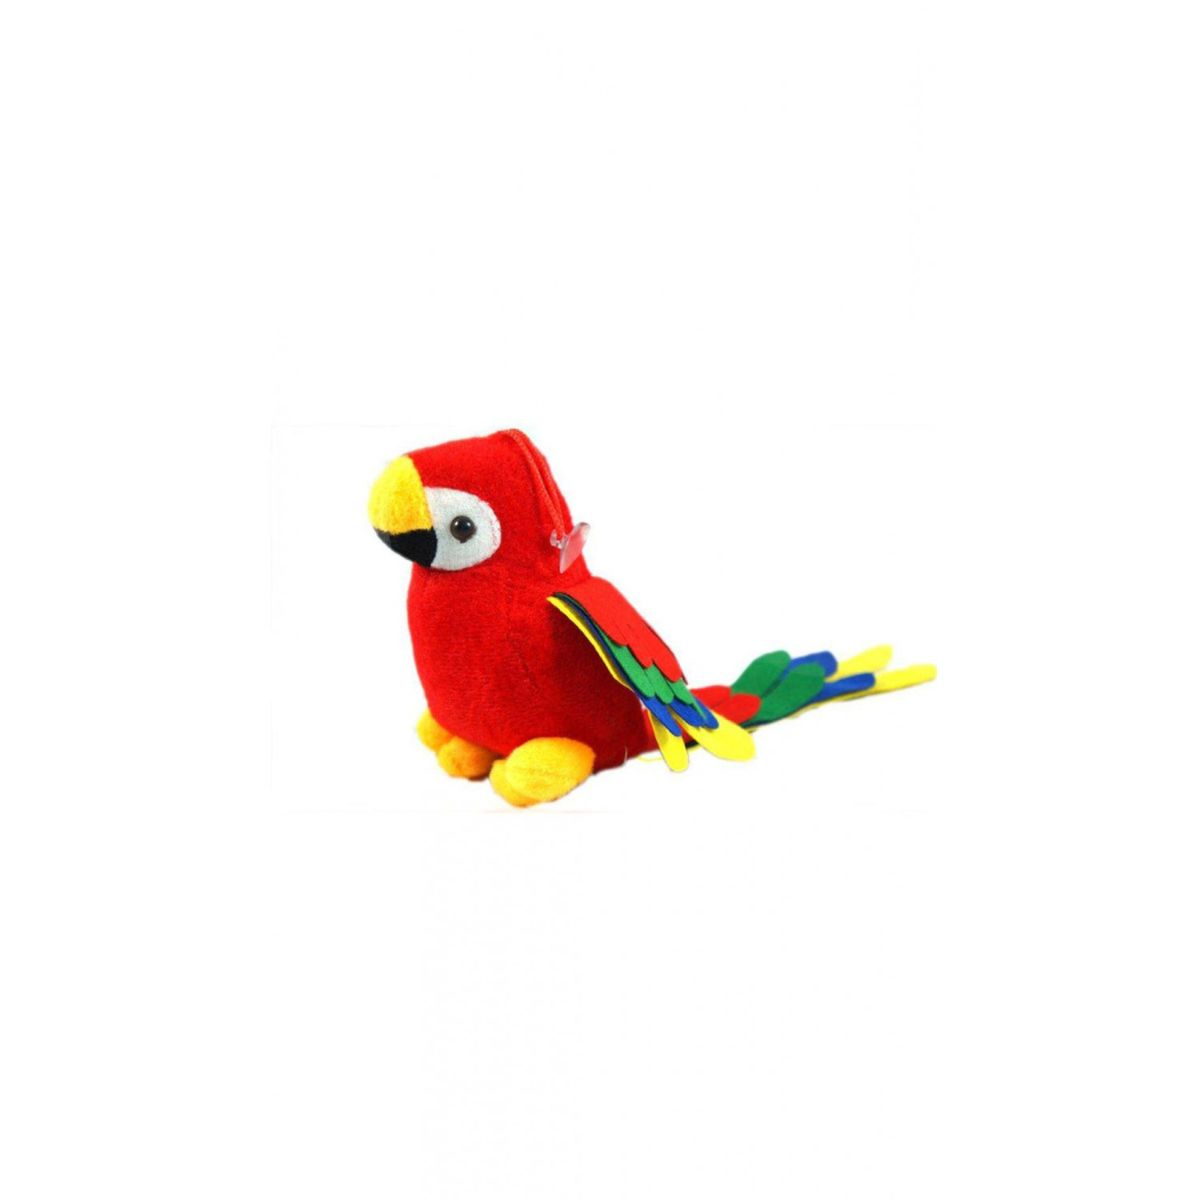 Aparnas cute looking macaw parrot for playing kids decoration or birthday gift35cm